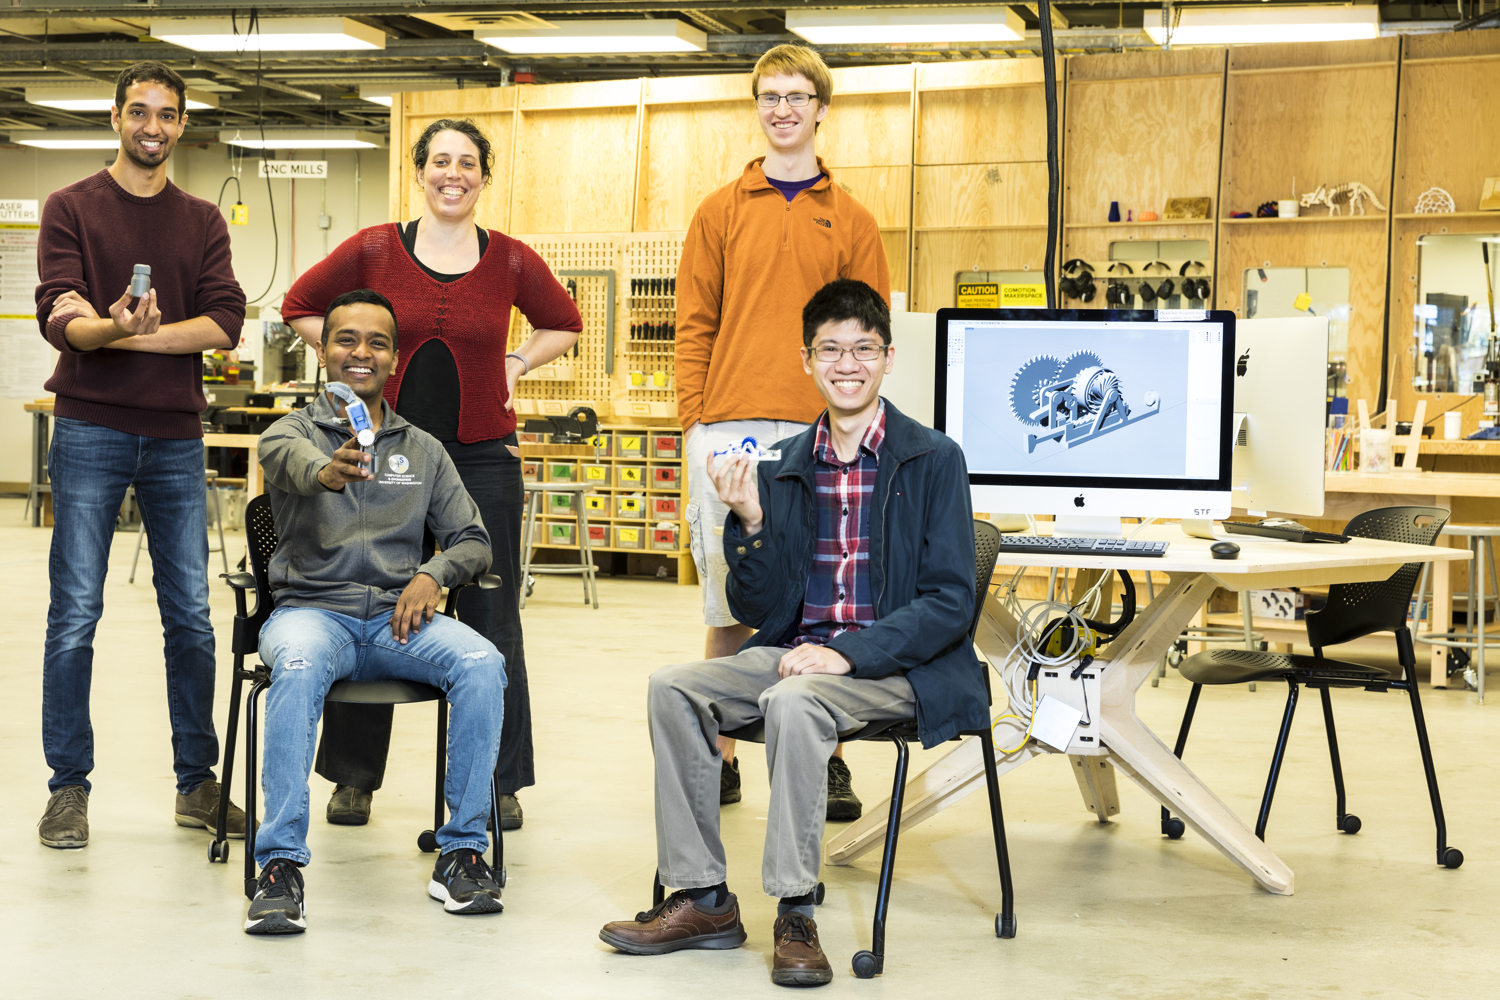 The engineering team at the University of Washington. Back row (left to right): Vikram Iyer, Jennifer Mankoff, Ian Culhane; Front row: Shyam Gollakota, Justin Chan. Image via Mark Stone/University of Washington